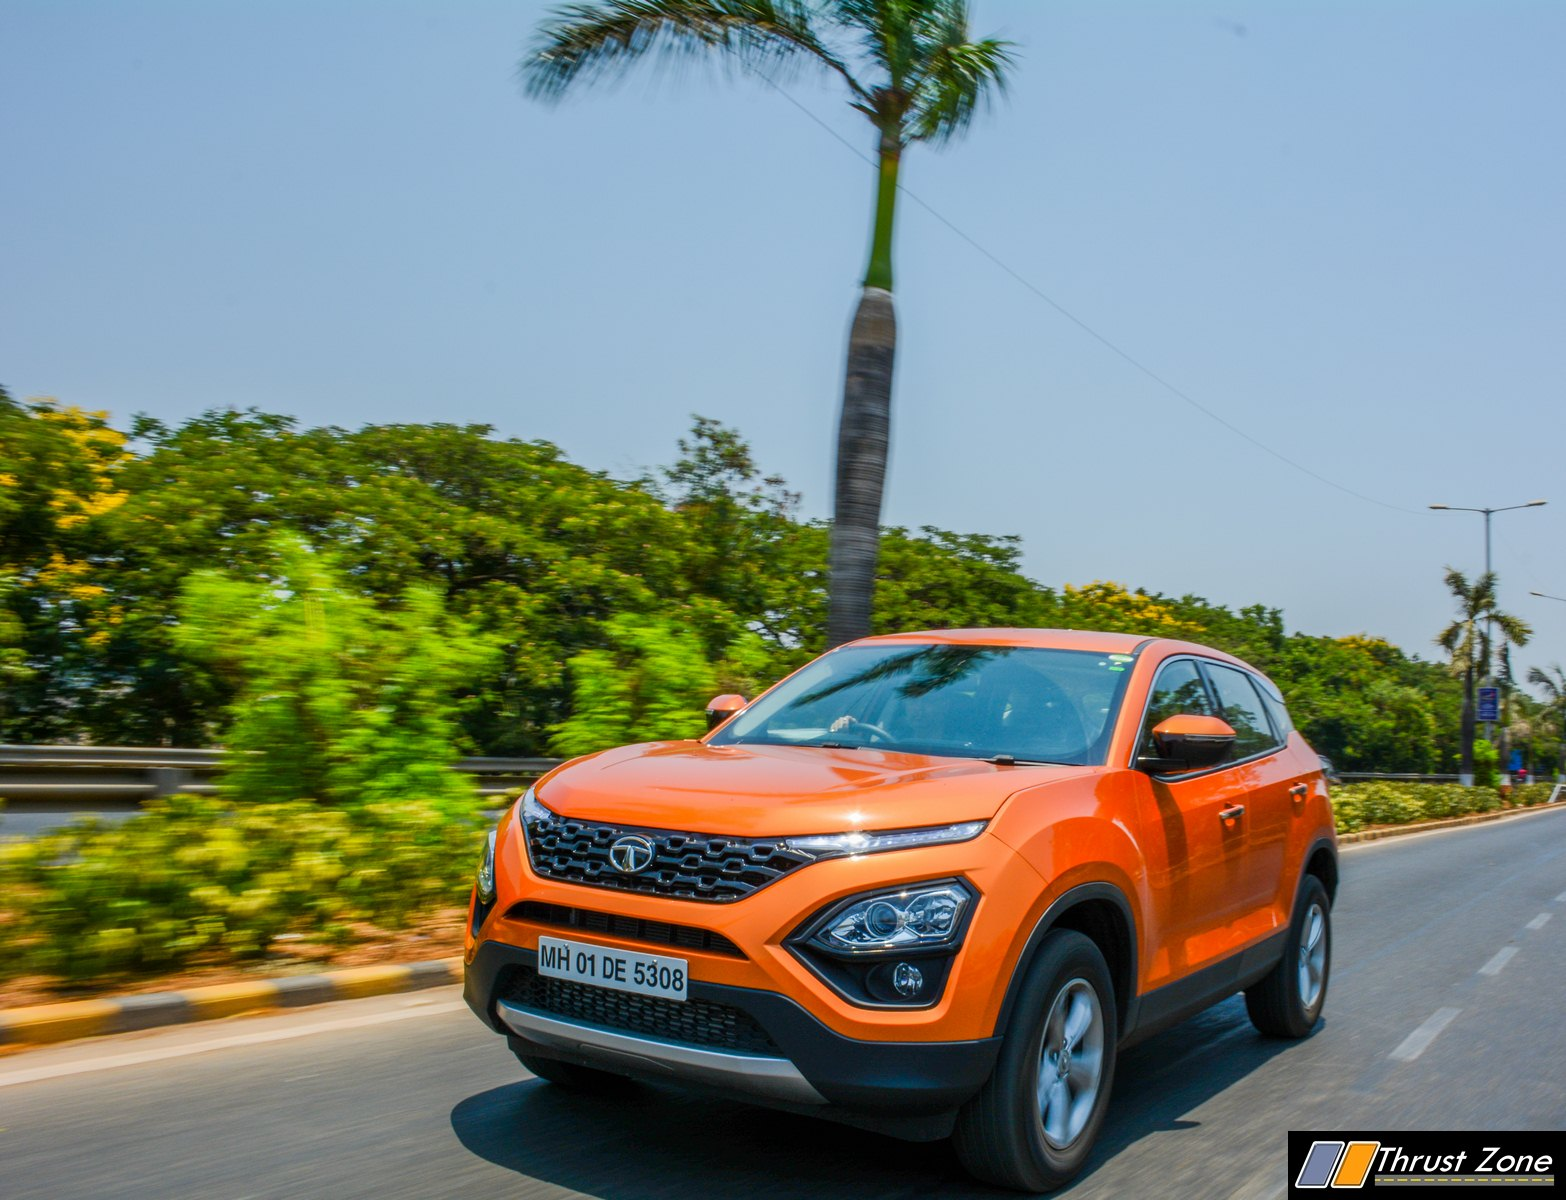 https://www.thrustzone.com/wp-content/uploads/2019/06/2019-Tata-harrier-diesel-manual-review-20.jpg